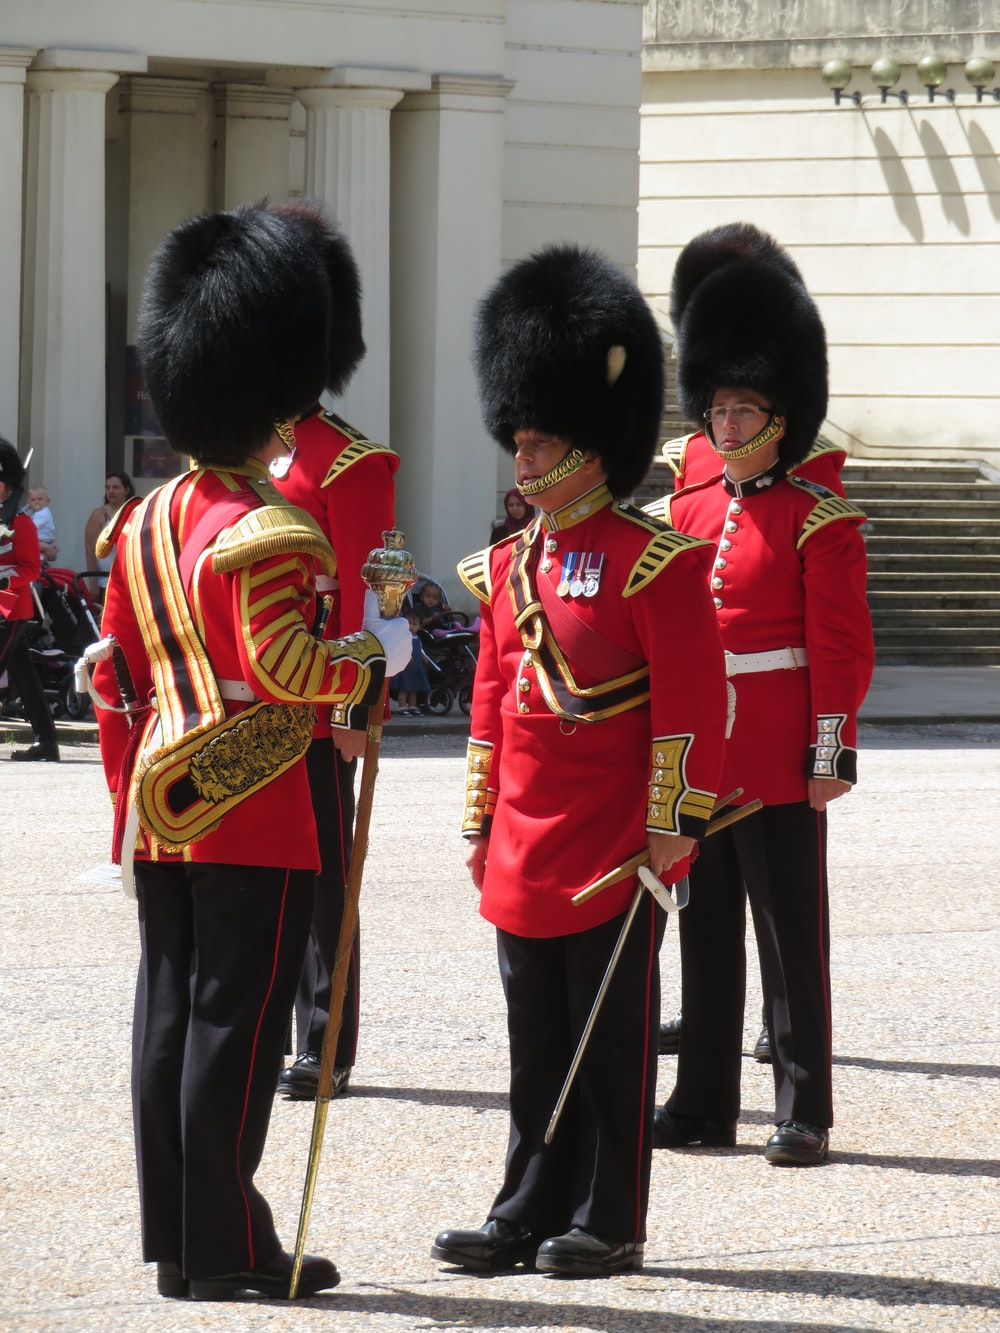 Royal guards holding sword